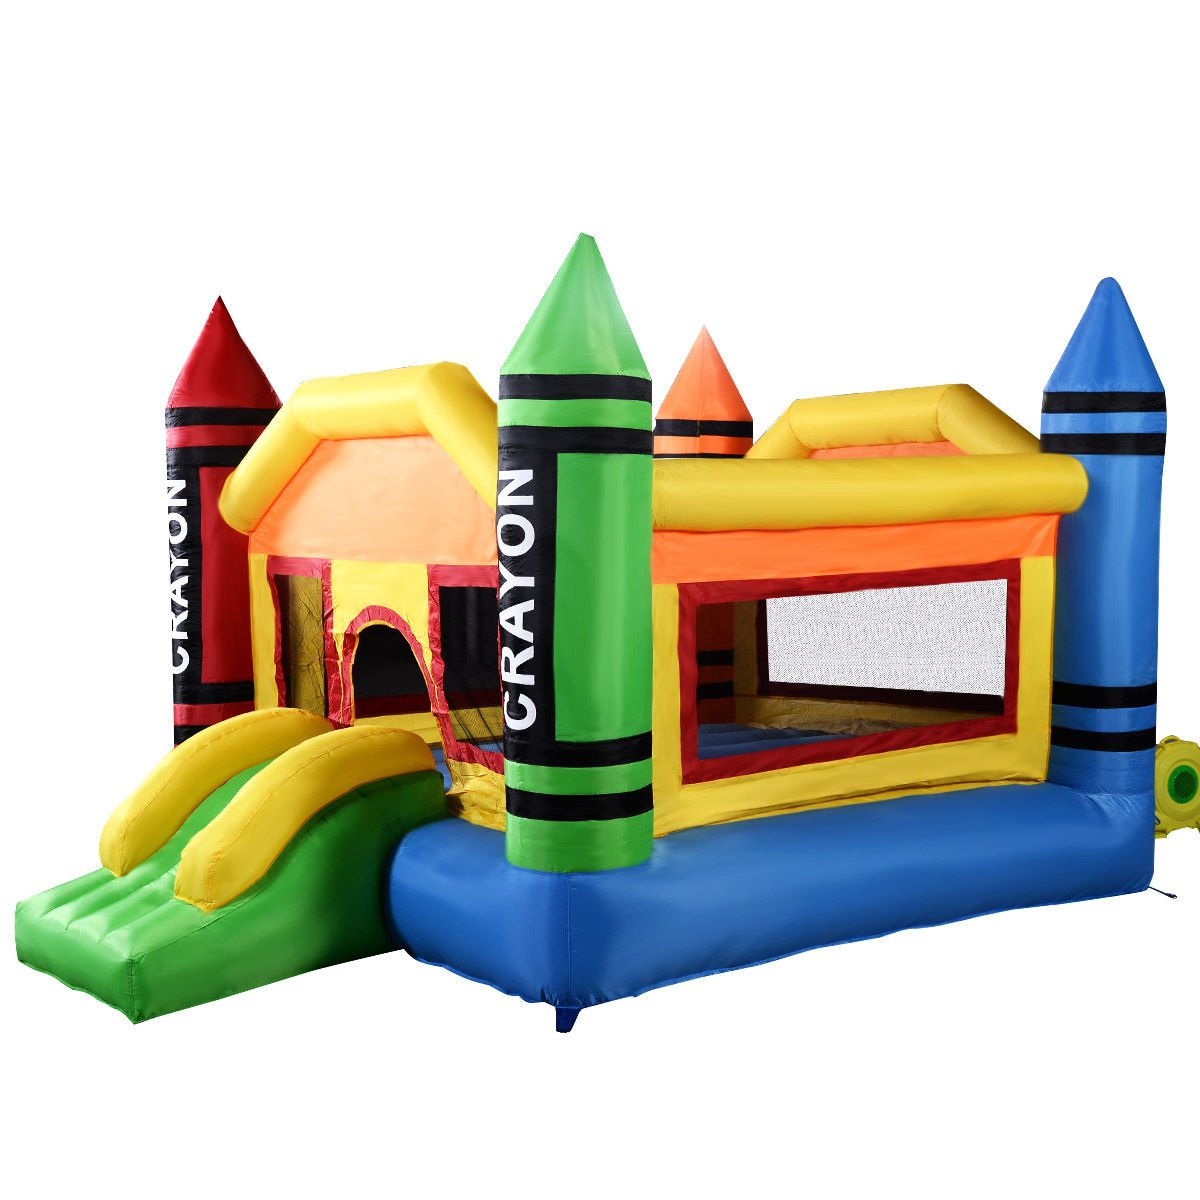 Costzon Inflatable Crayon Bounce House Castle Jumper Moonwalk Bouncer Without Blower